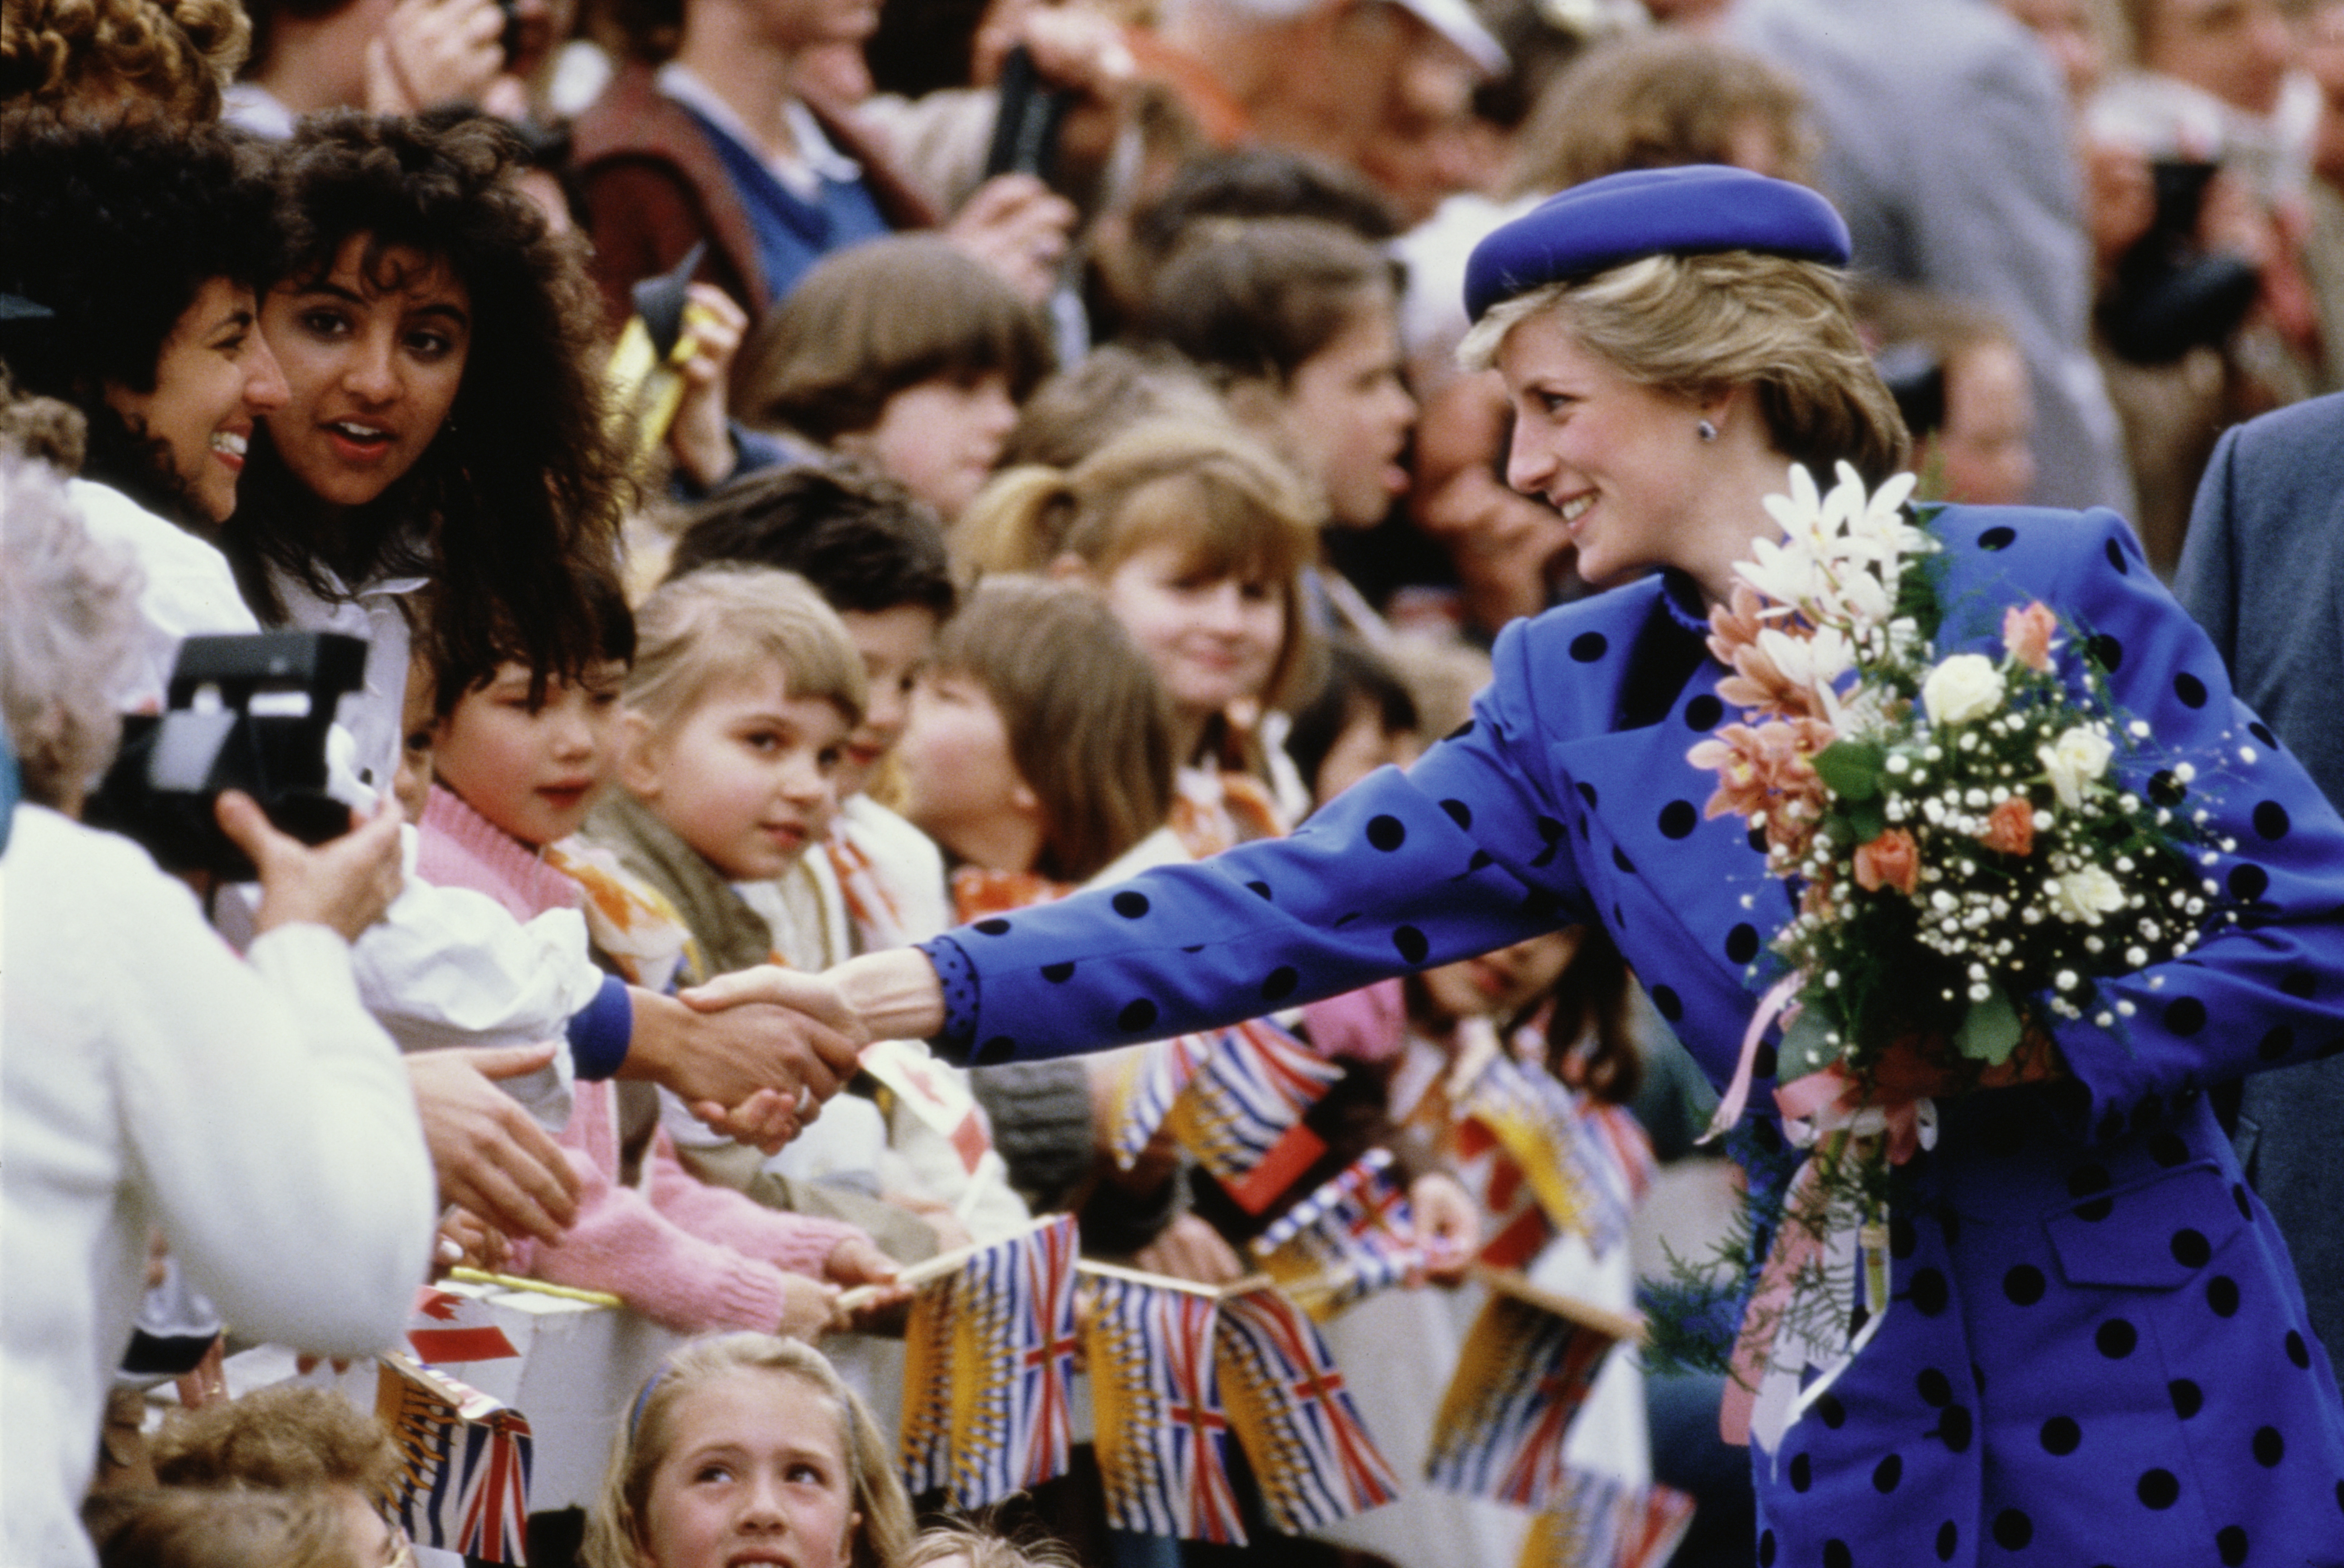 Diana, Princess of Wales (1961 - 1997) during a trip to Canada, May 1986.